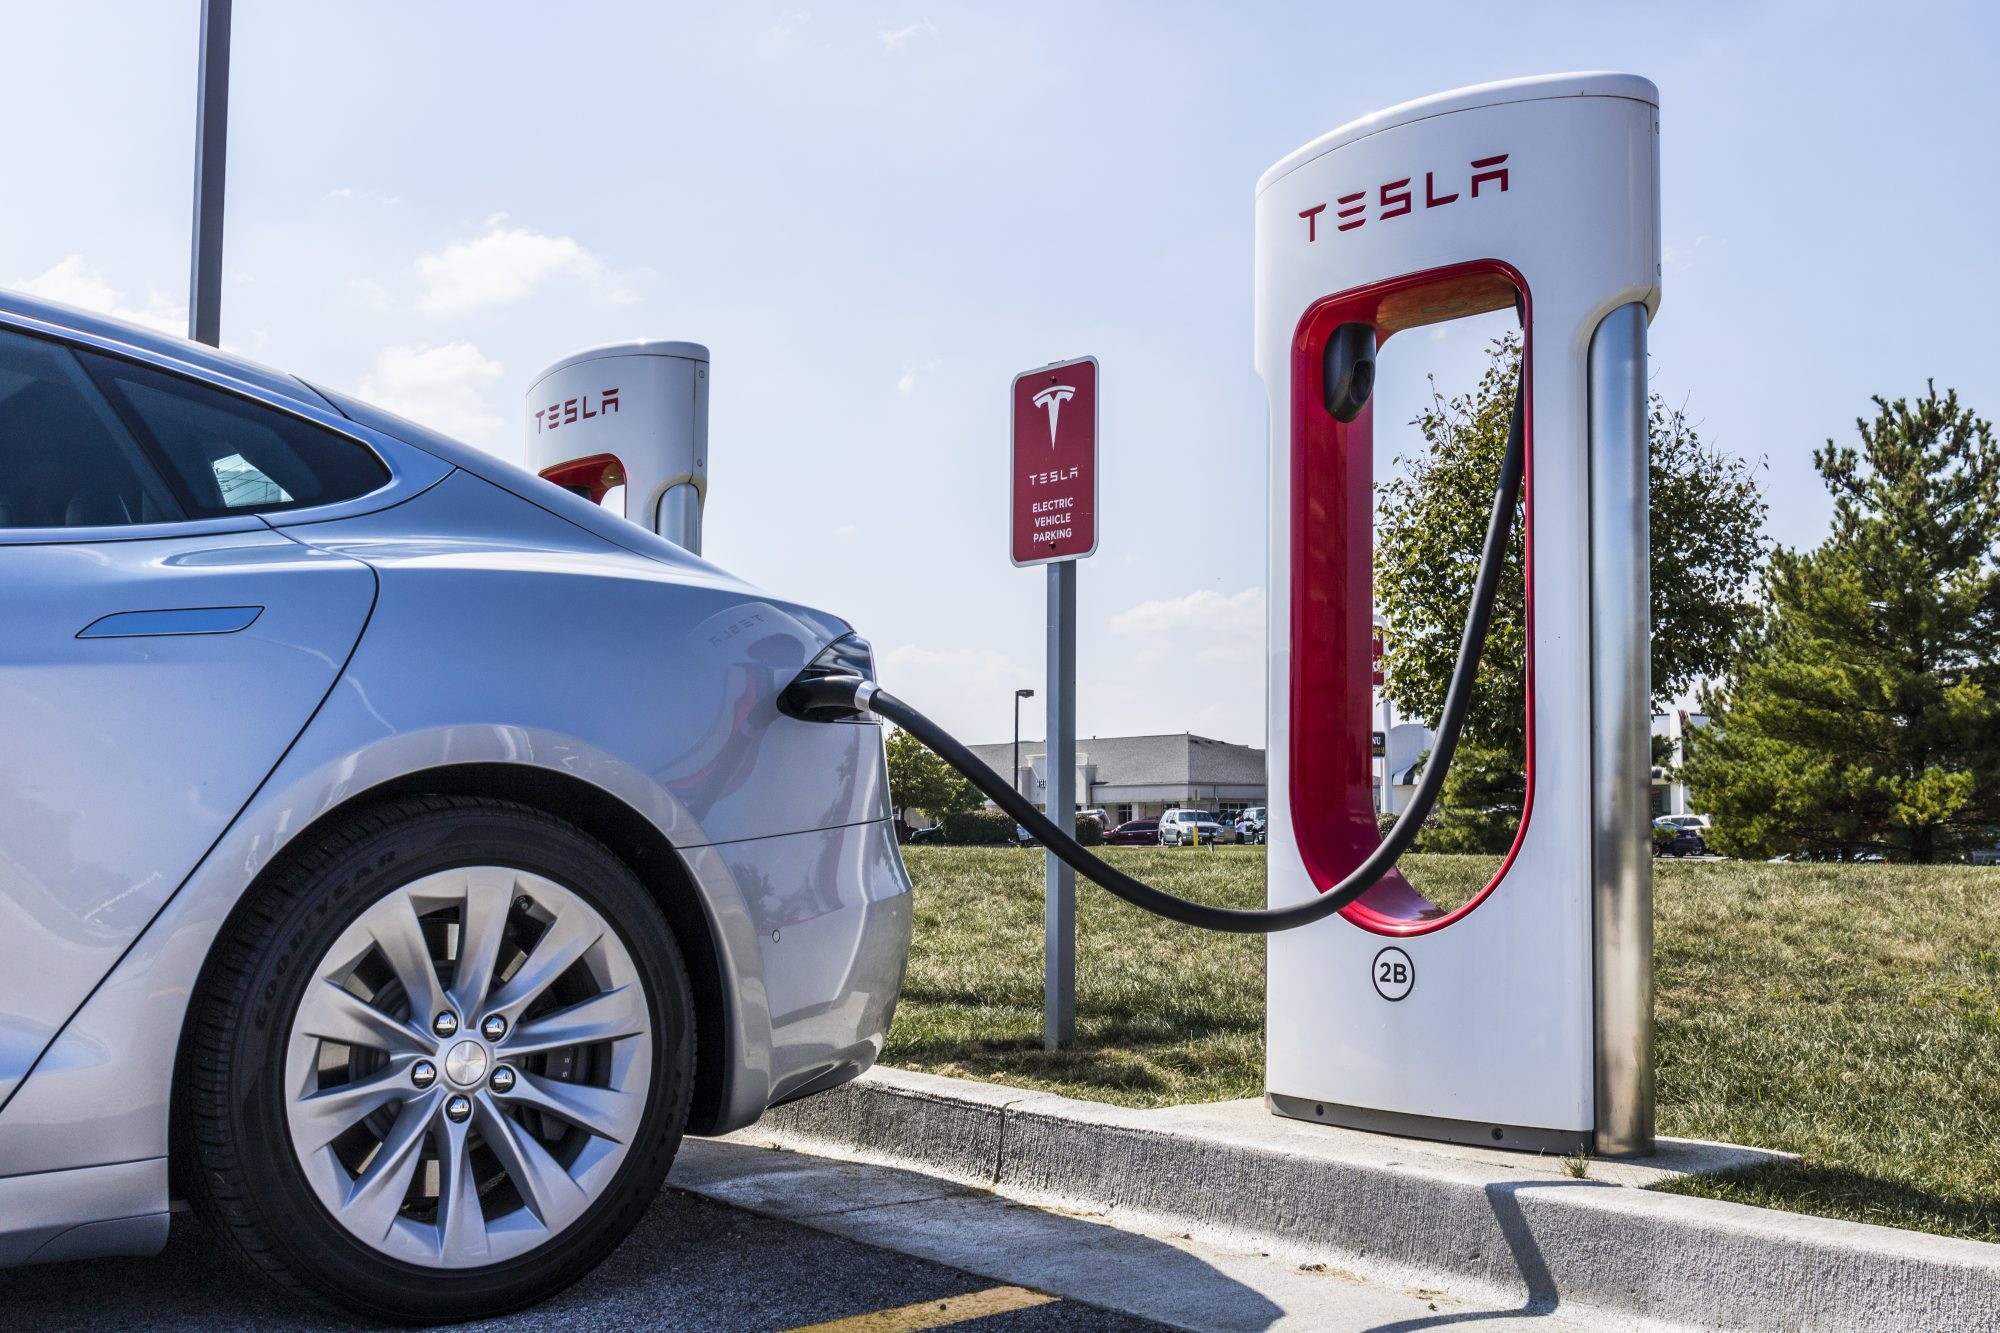 Tesla Supercharger Station. The Supercharger offers fast recharging of the Model S and Model X electric vehicles XI